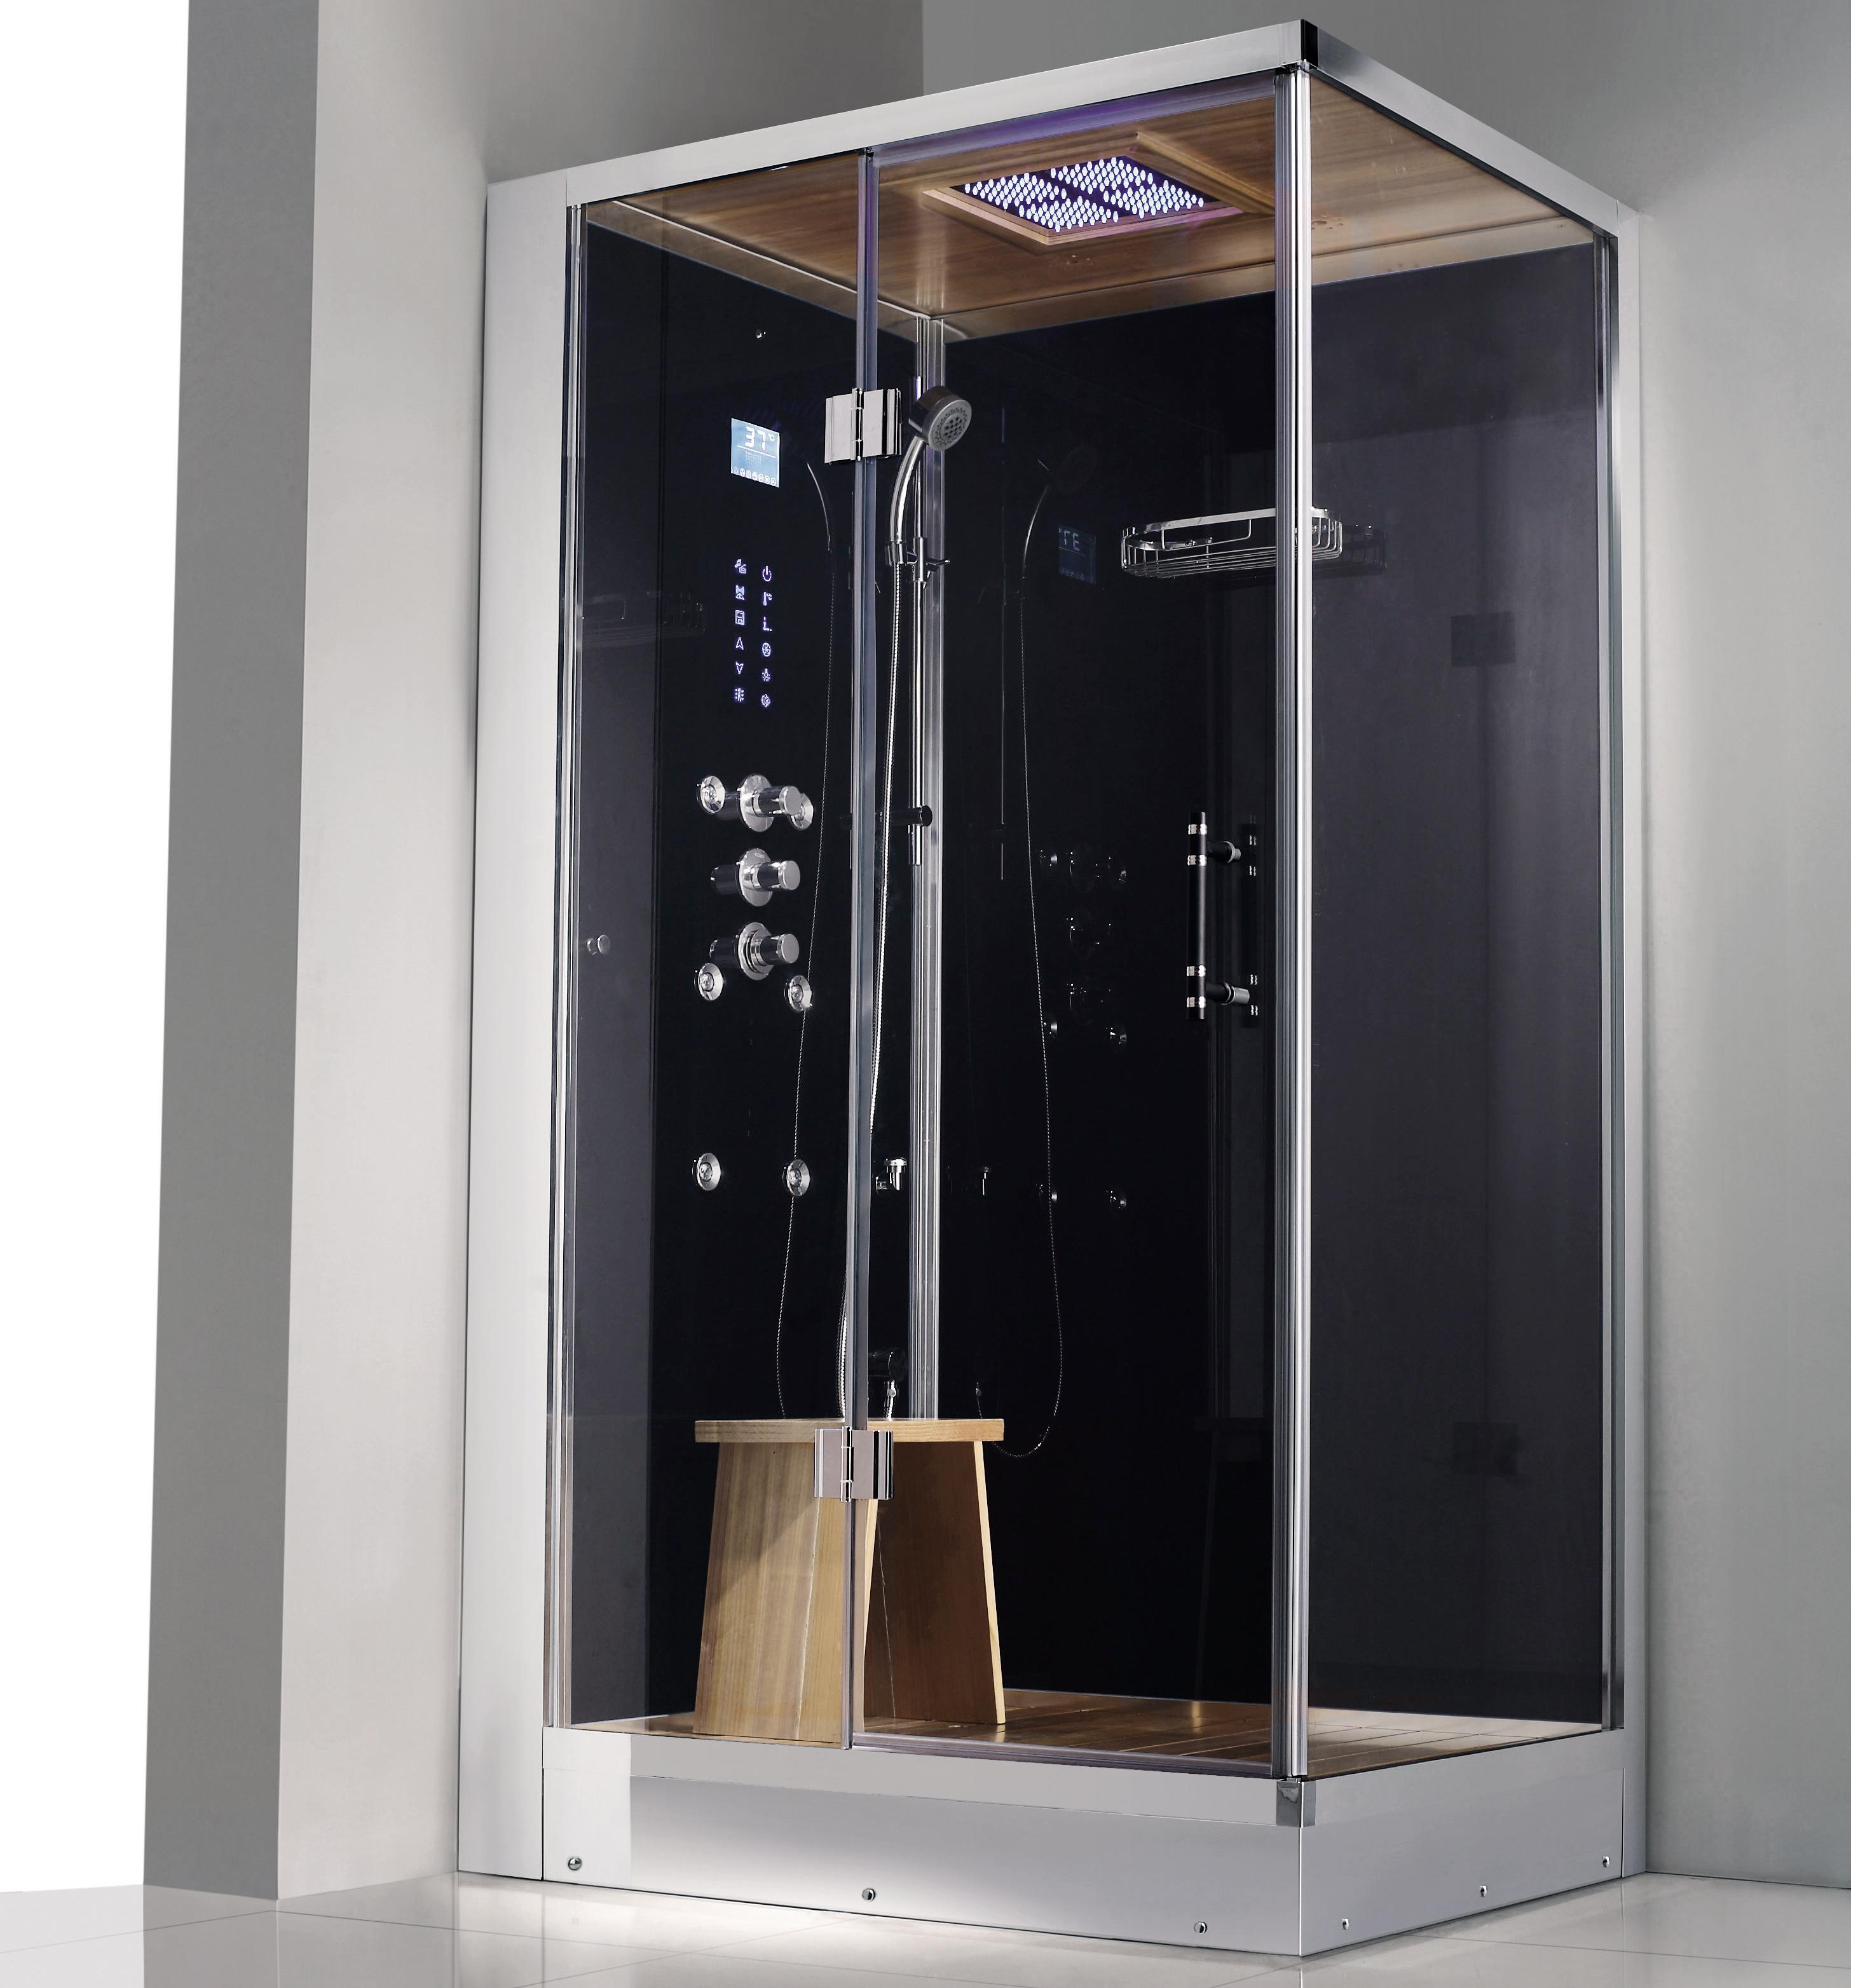 buy s white competitive steam showers shower generator owner plus in at manual products prices jupiter